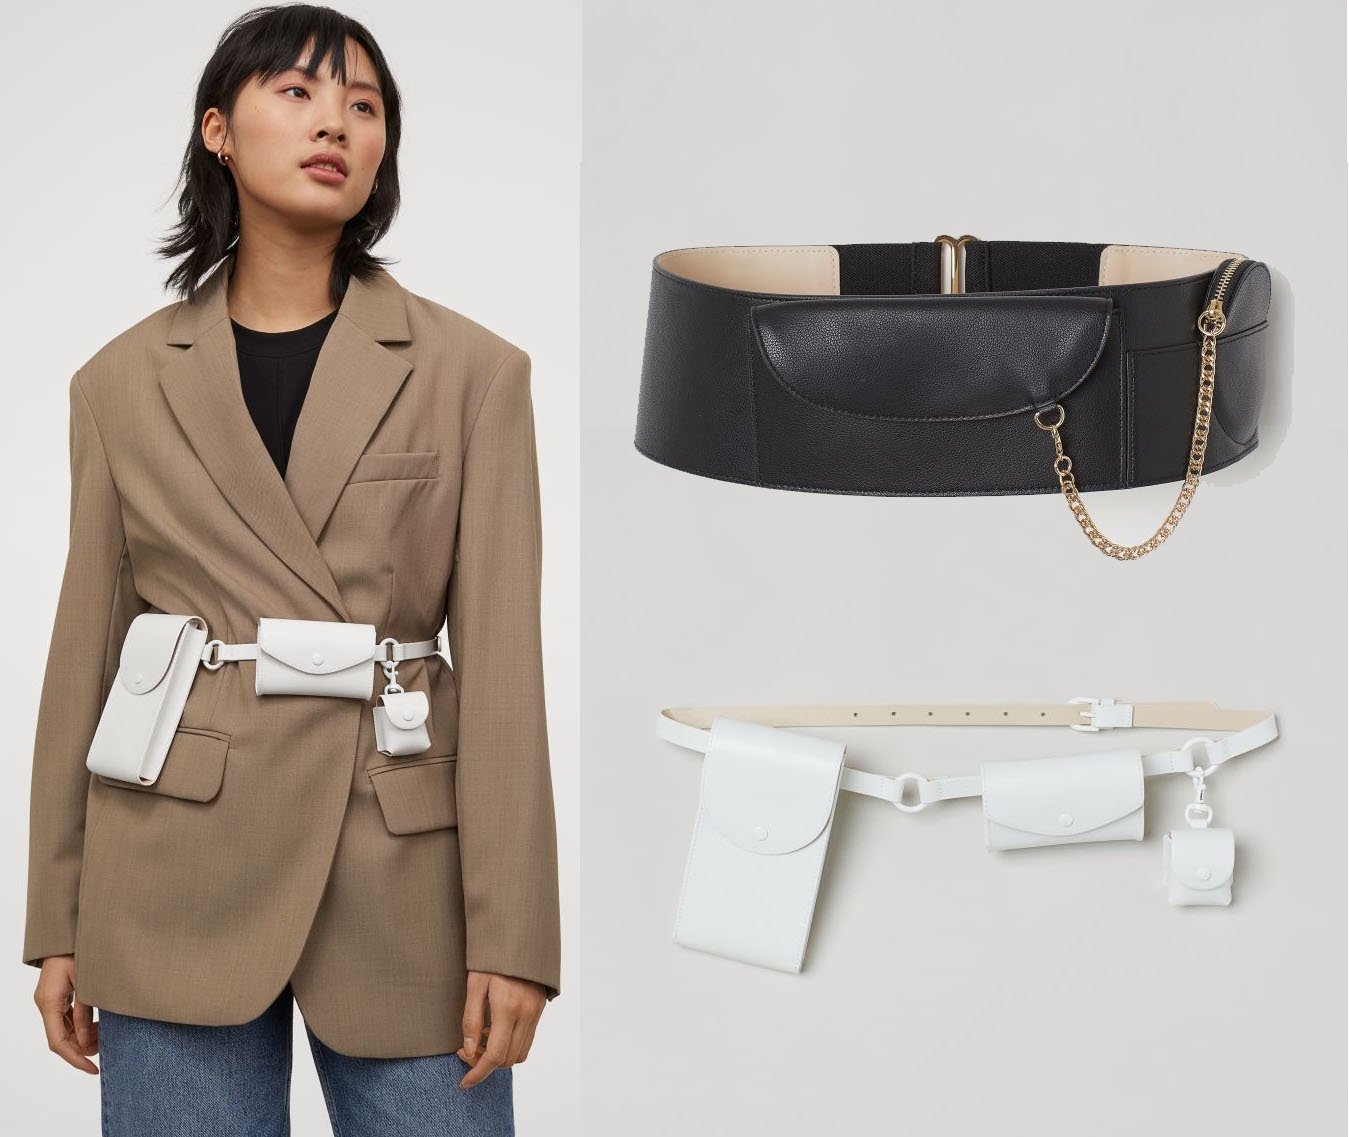 An interesting take on classic belt bags, H&M's Waist Belt Bag is a simple belt with multiple pockets for your essentails